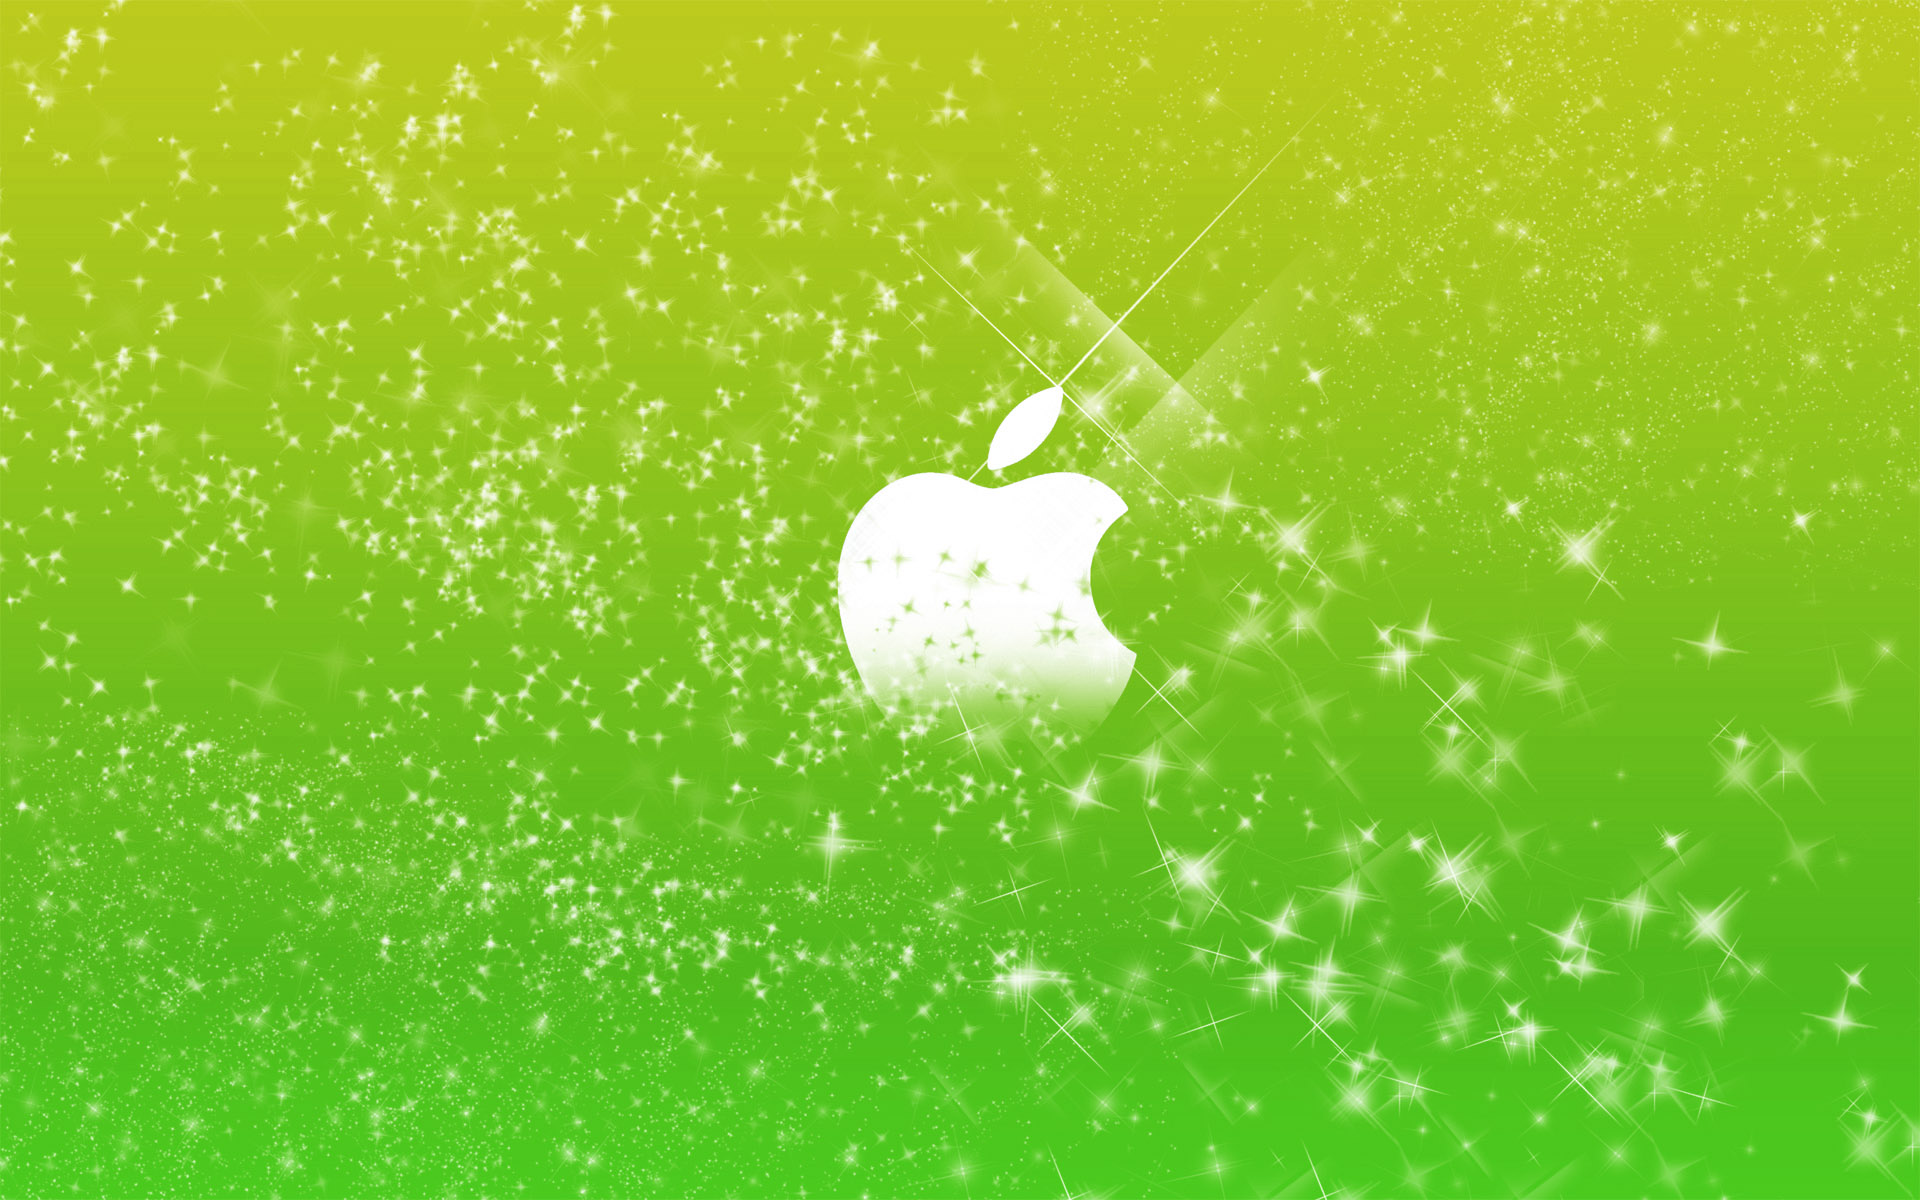 Apple Logo Wallpapers HD green stars